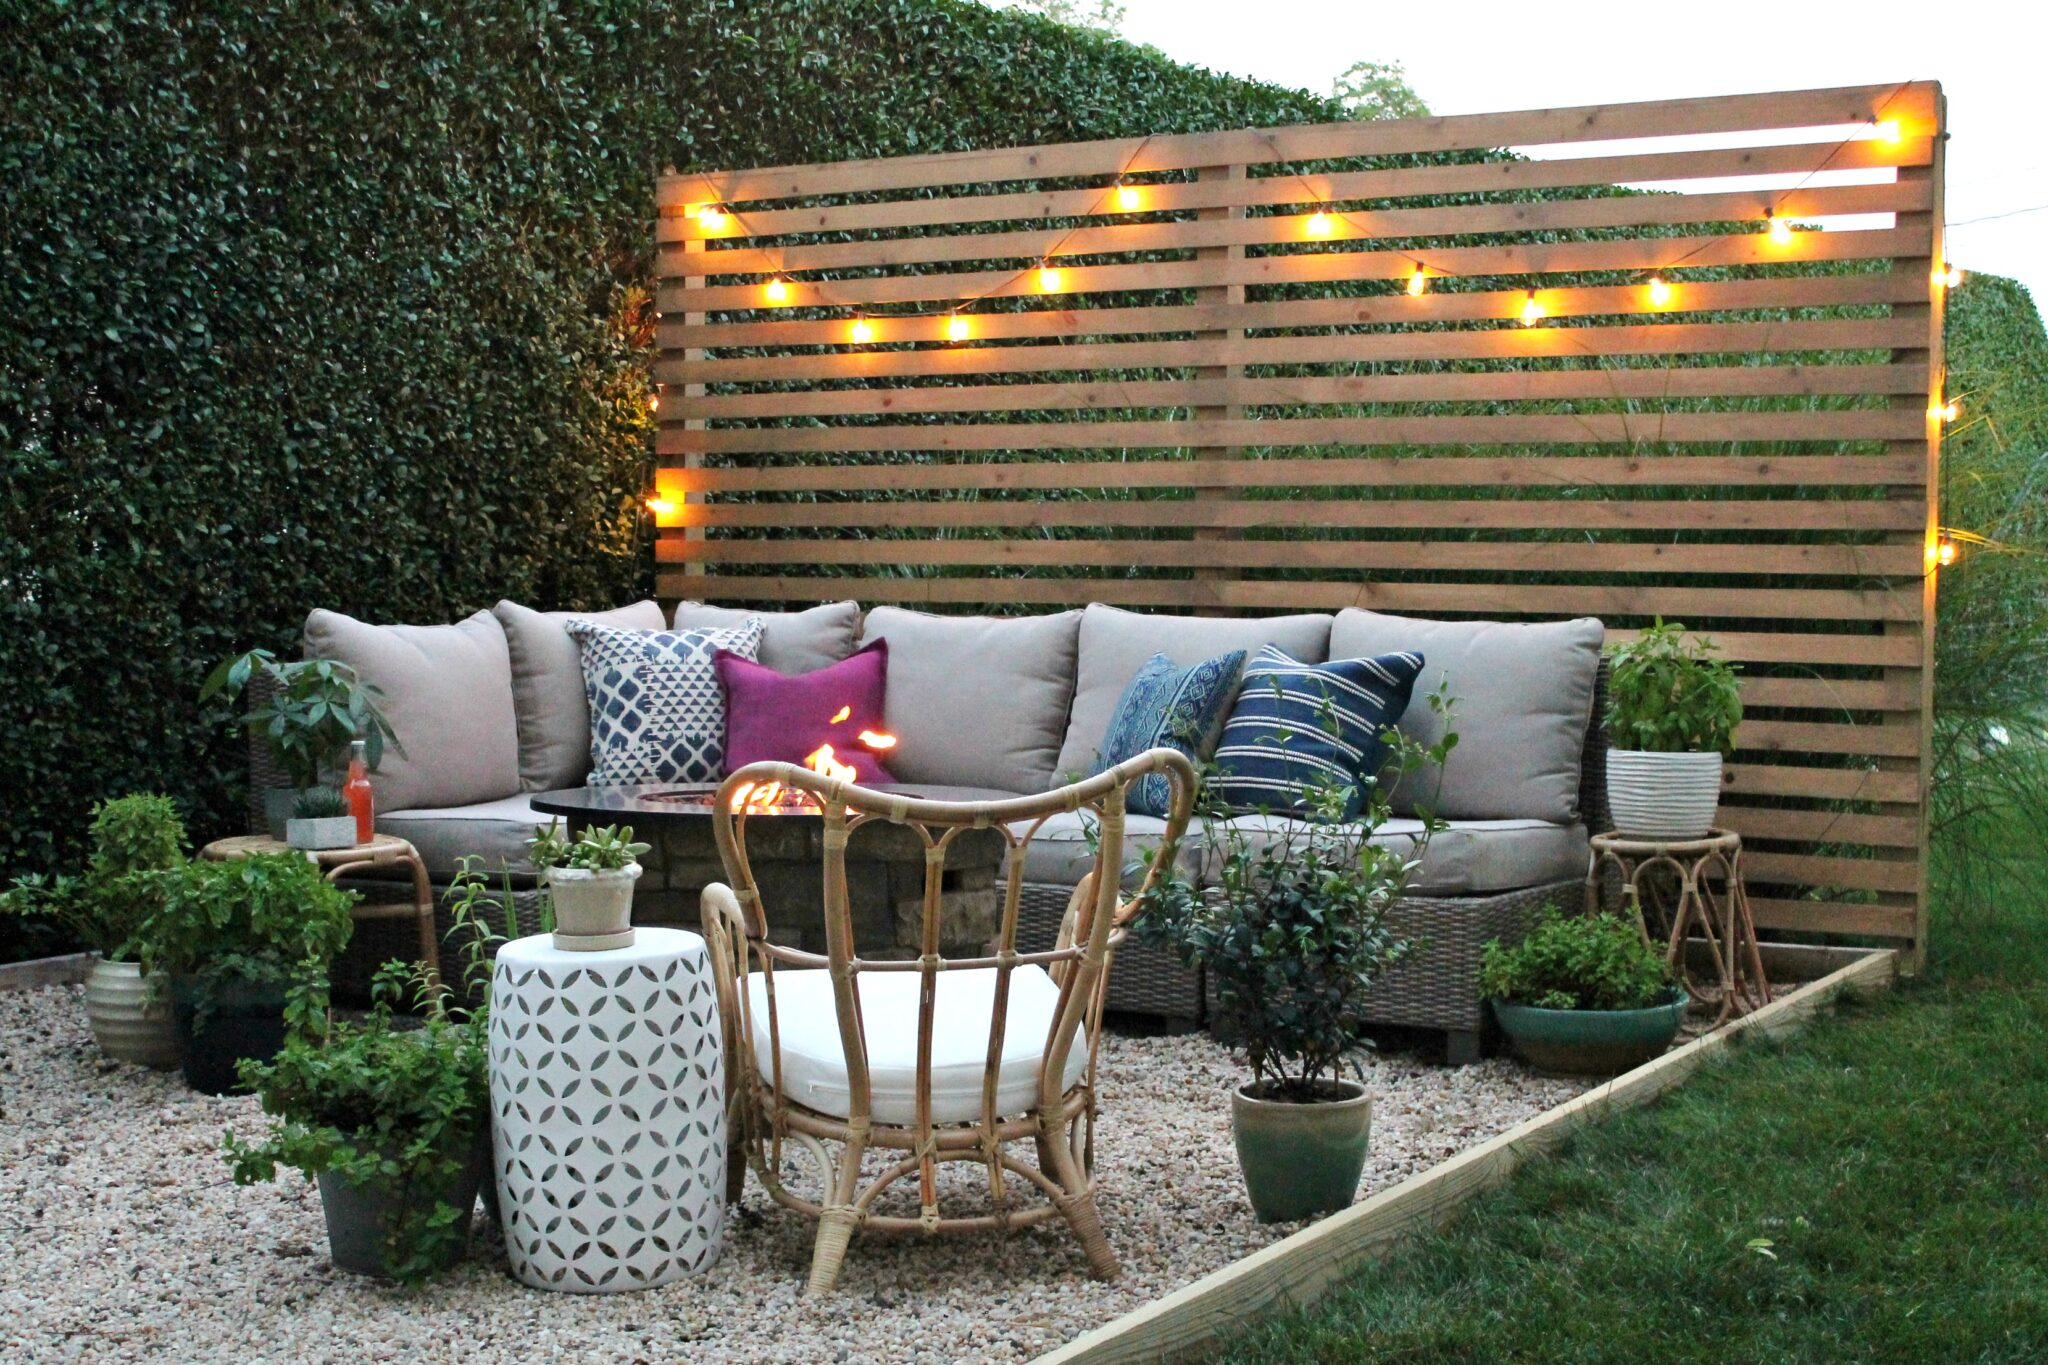 Outdoor Patio With Sectional Fire Pit And Privacy Screen City Farmhouse